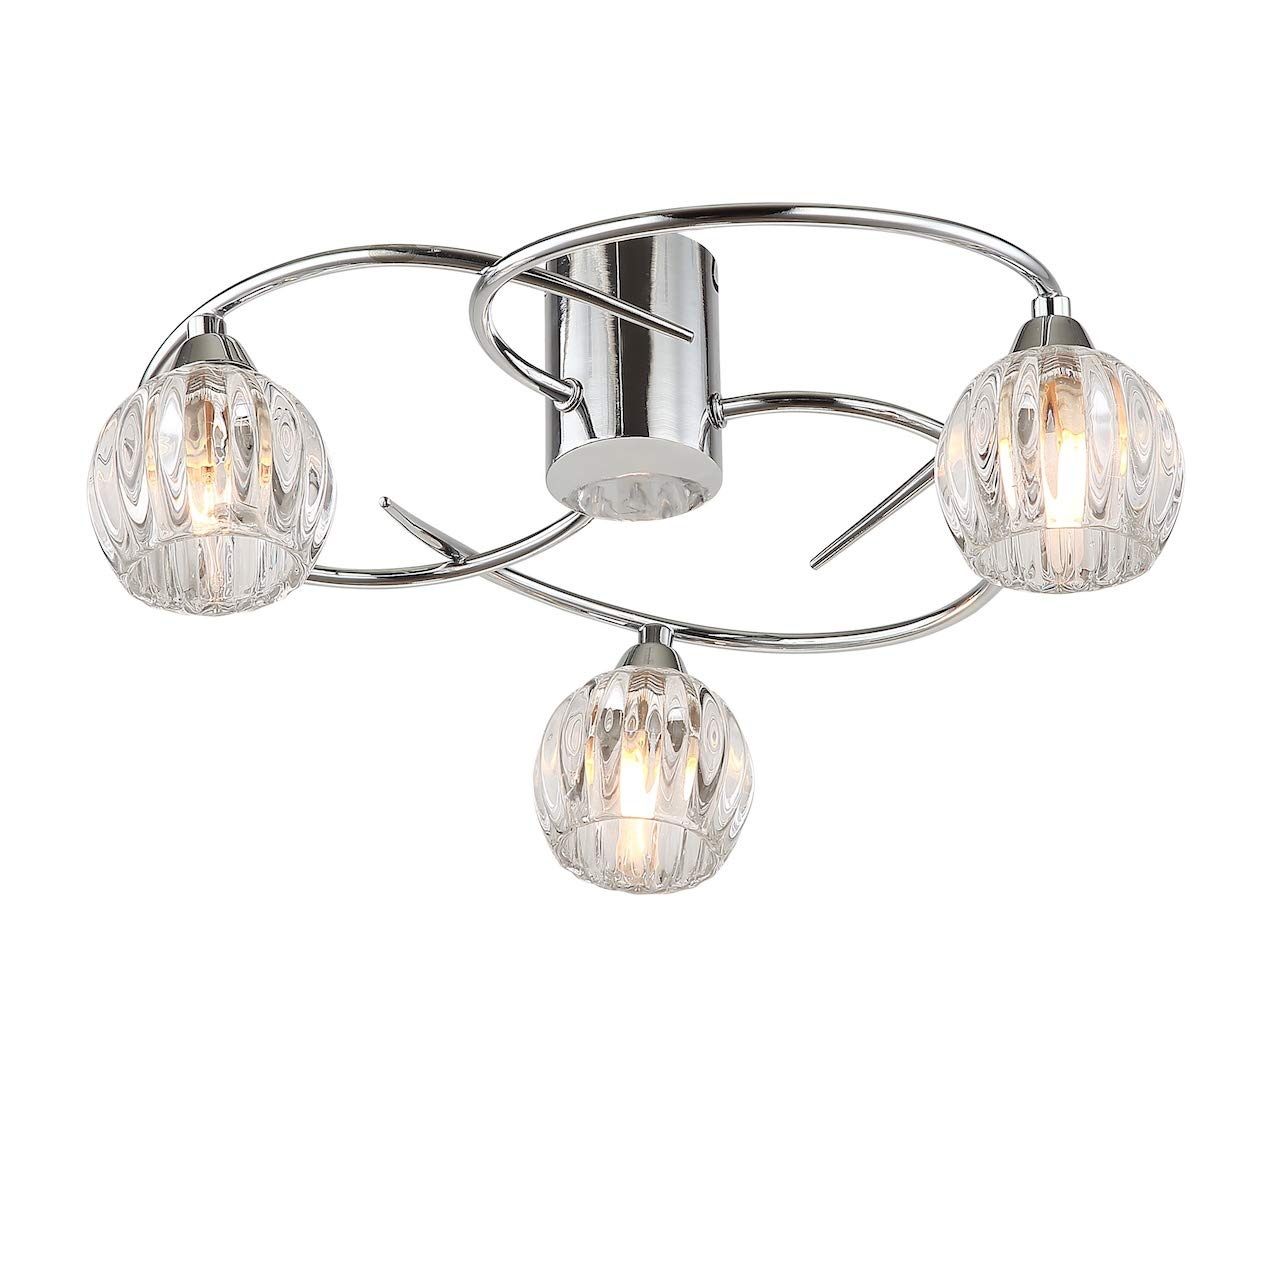 AUROLITE BOLLA Modern Semi Flush Ceiling, Polished Chrome, Globe Shaped Glass Shade, Free LED G9 Bulbs Included, 20W (5 Lights, Warm White 3000K) AL1037